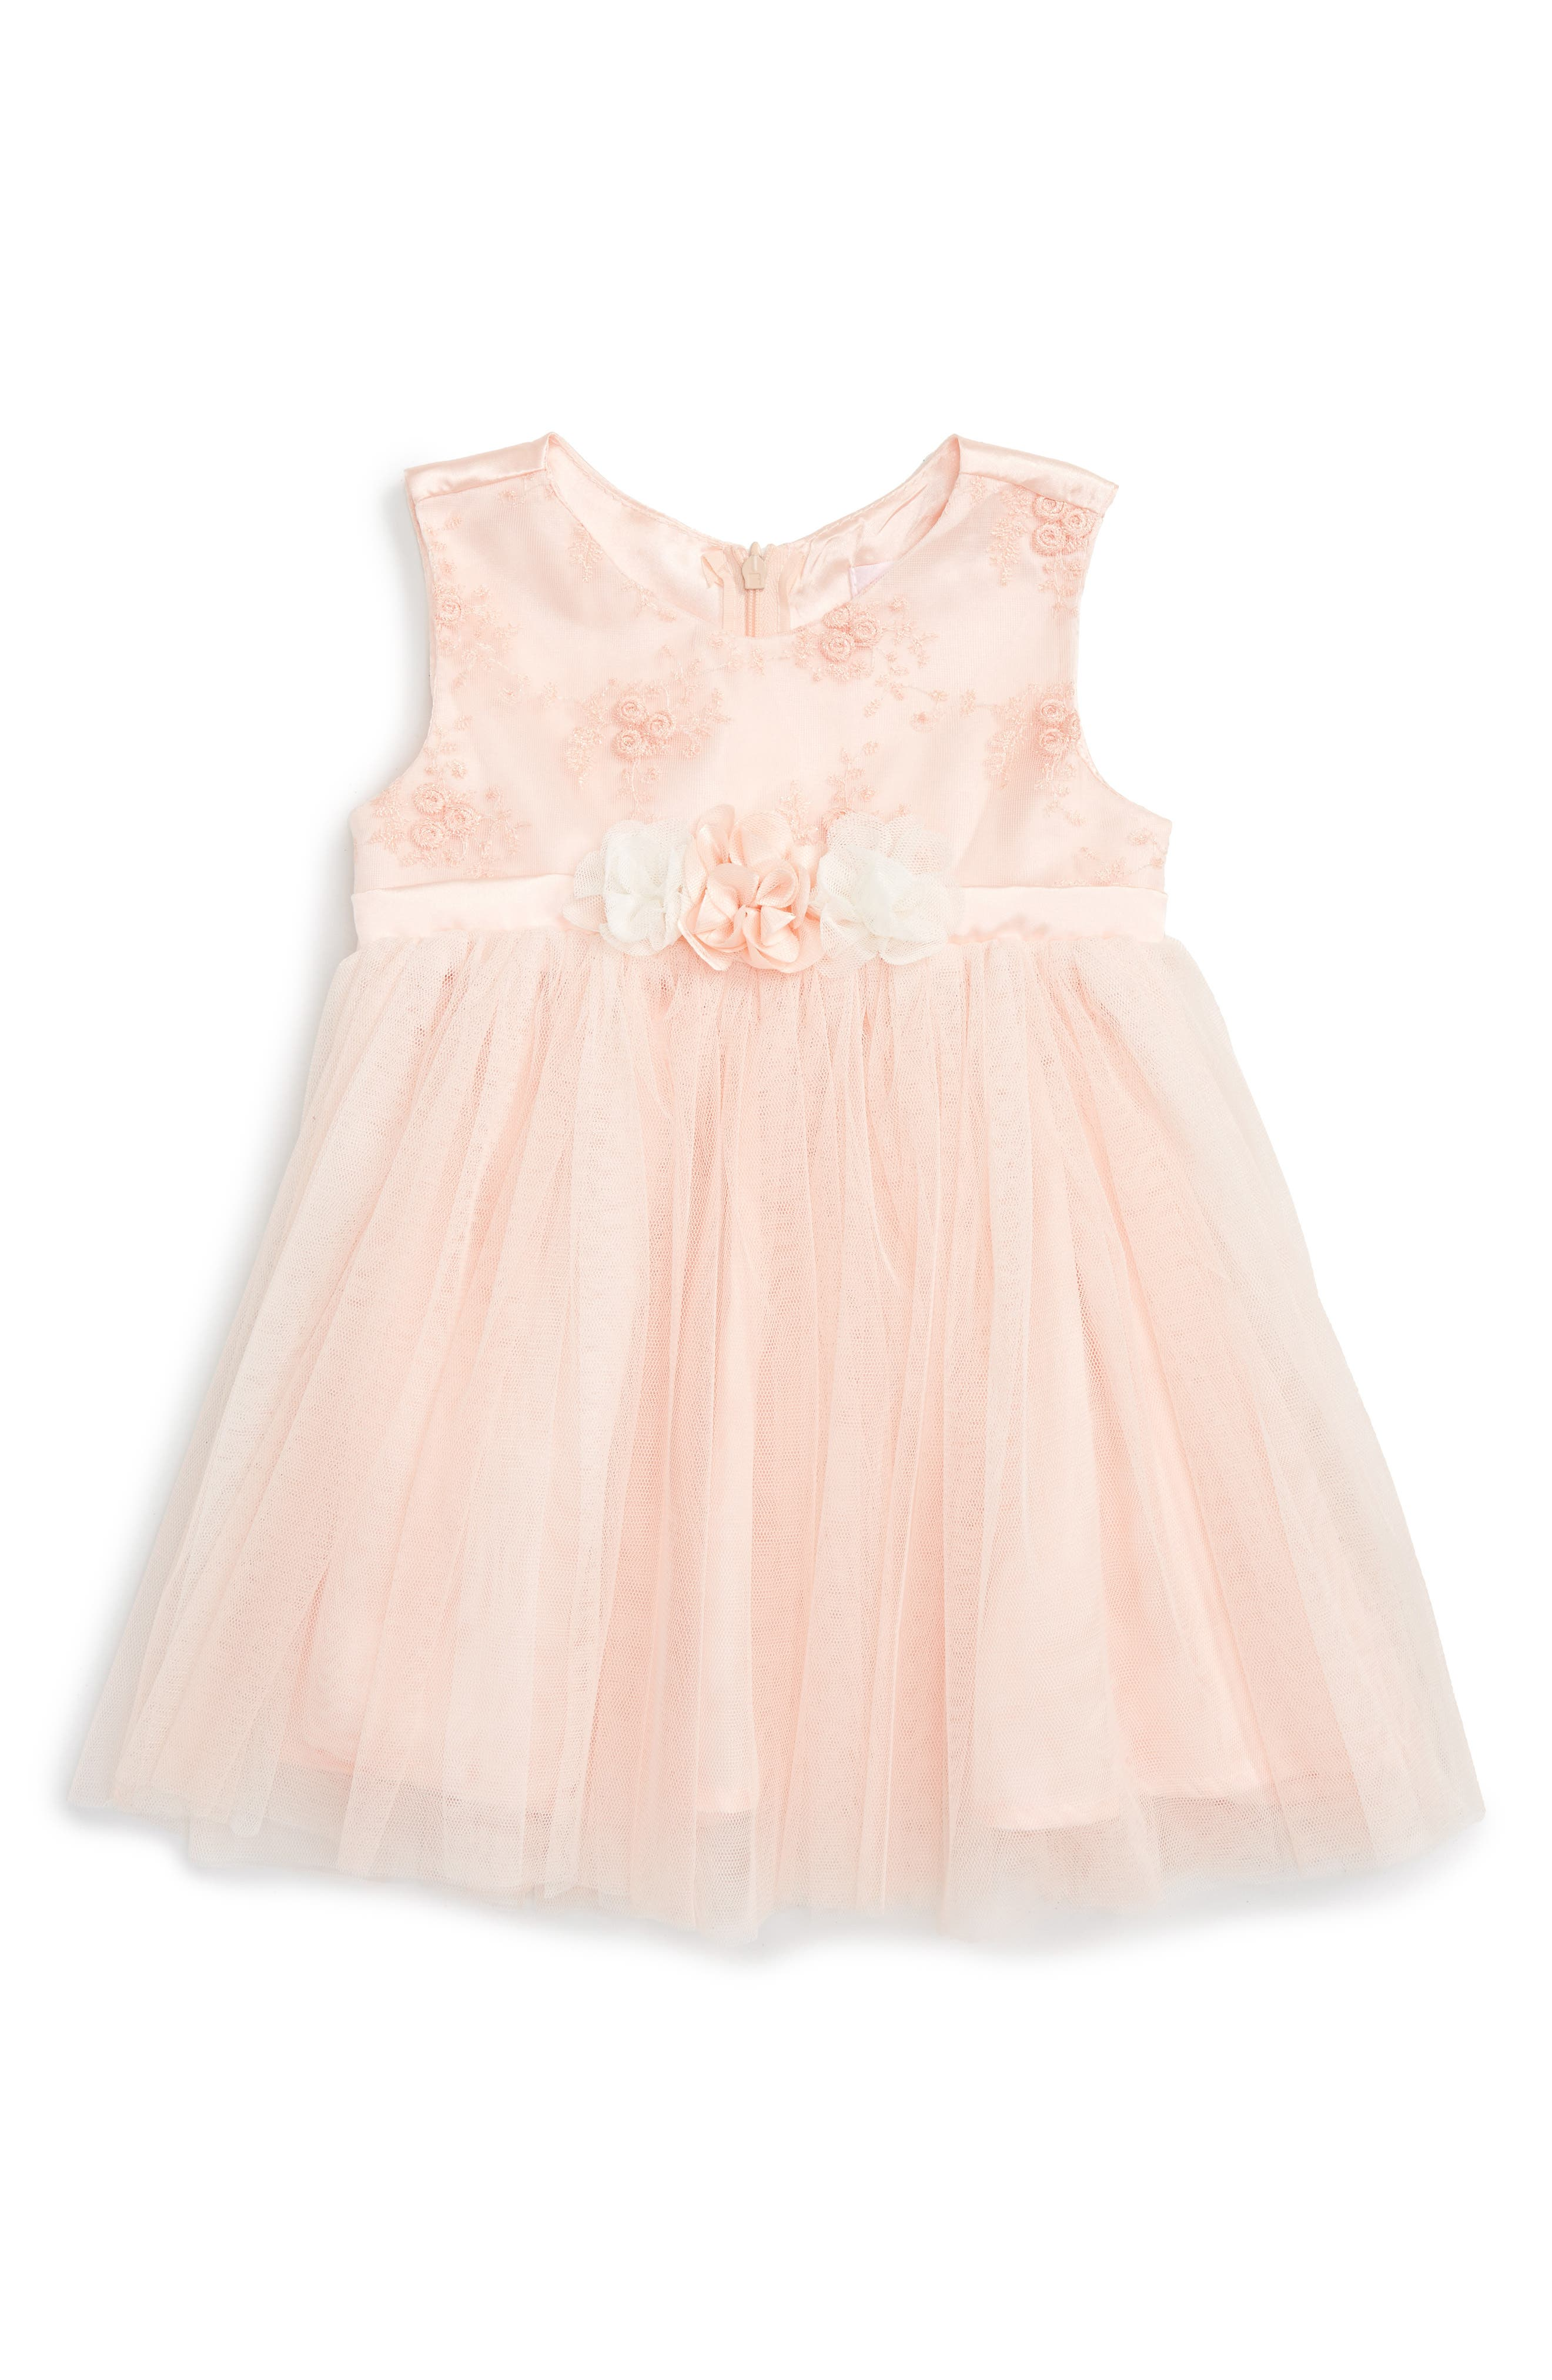 Main Image - Popatu Floral Embroidered Tulle Dress (Baby Girls)